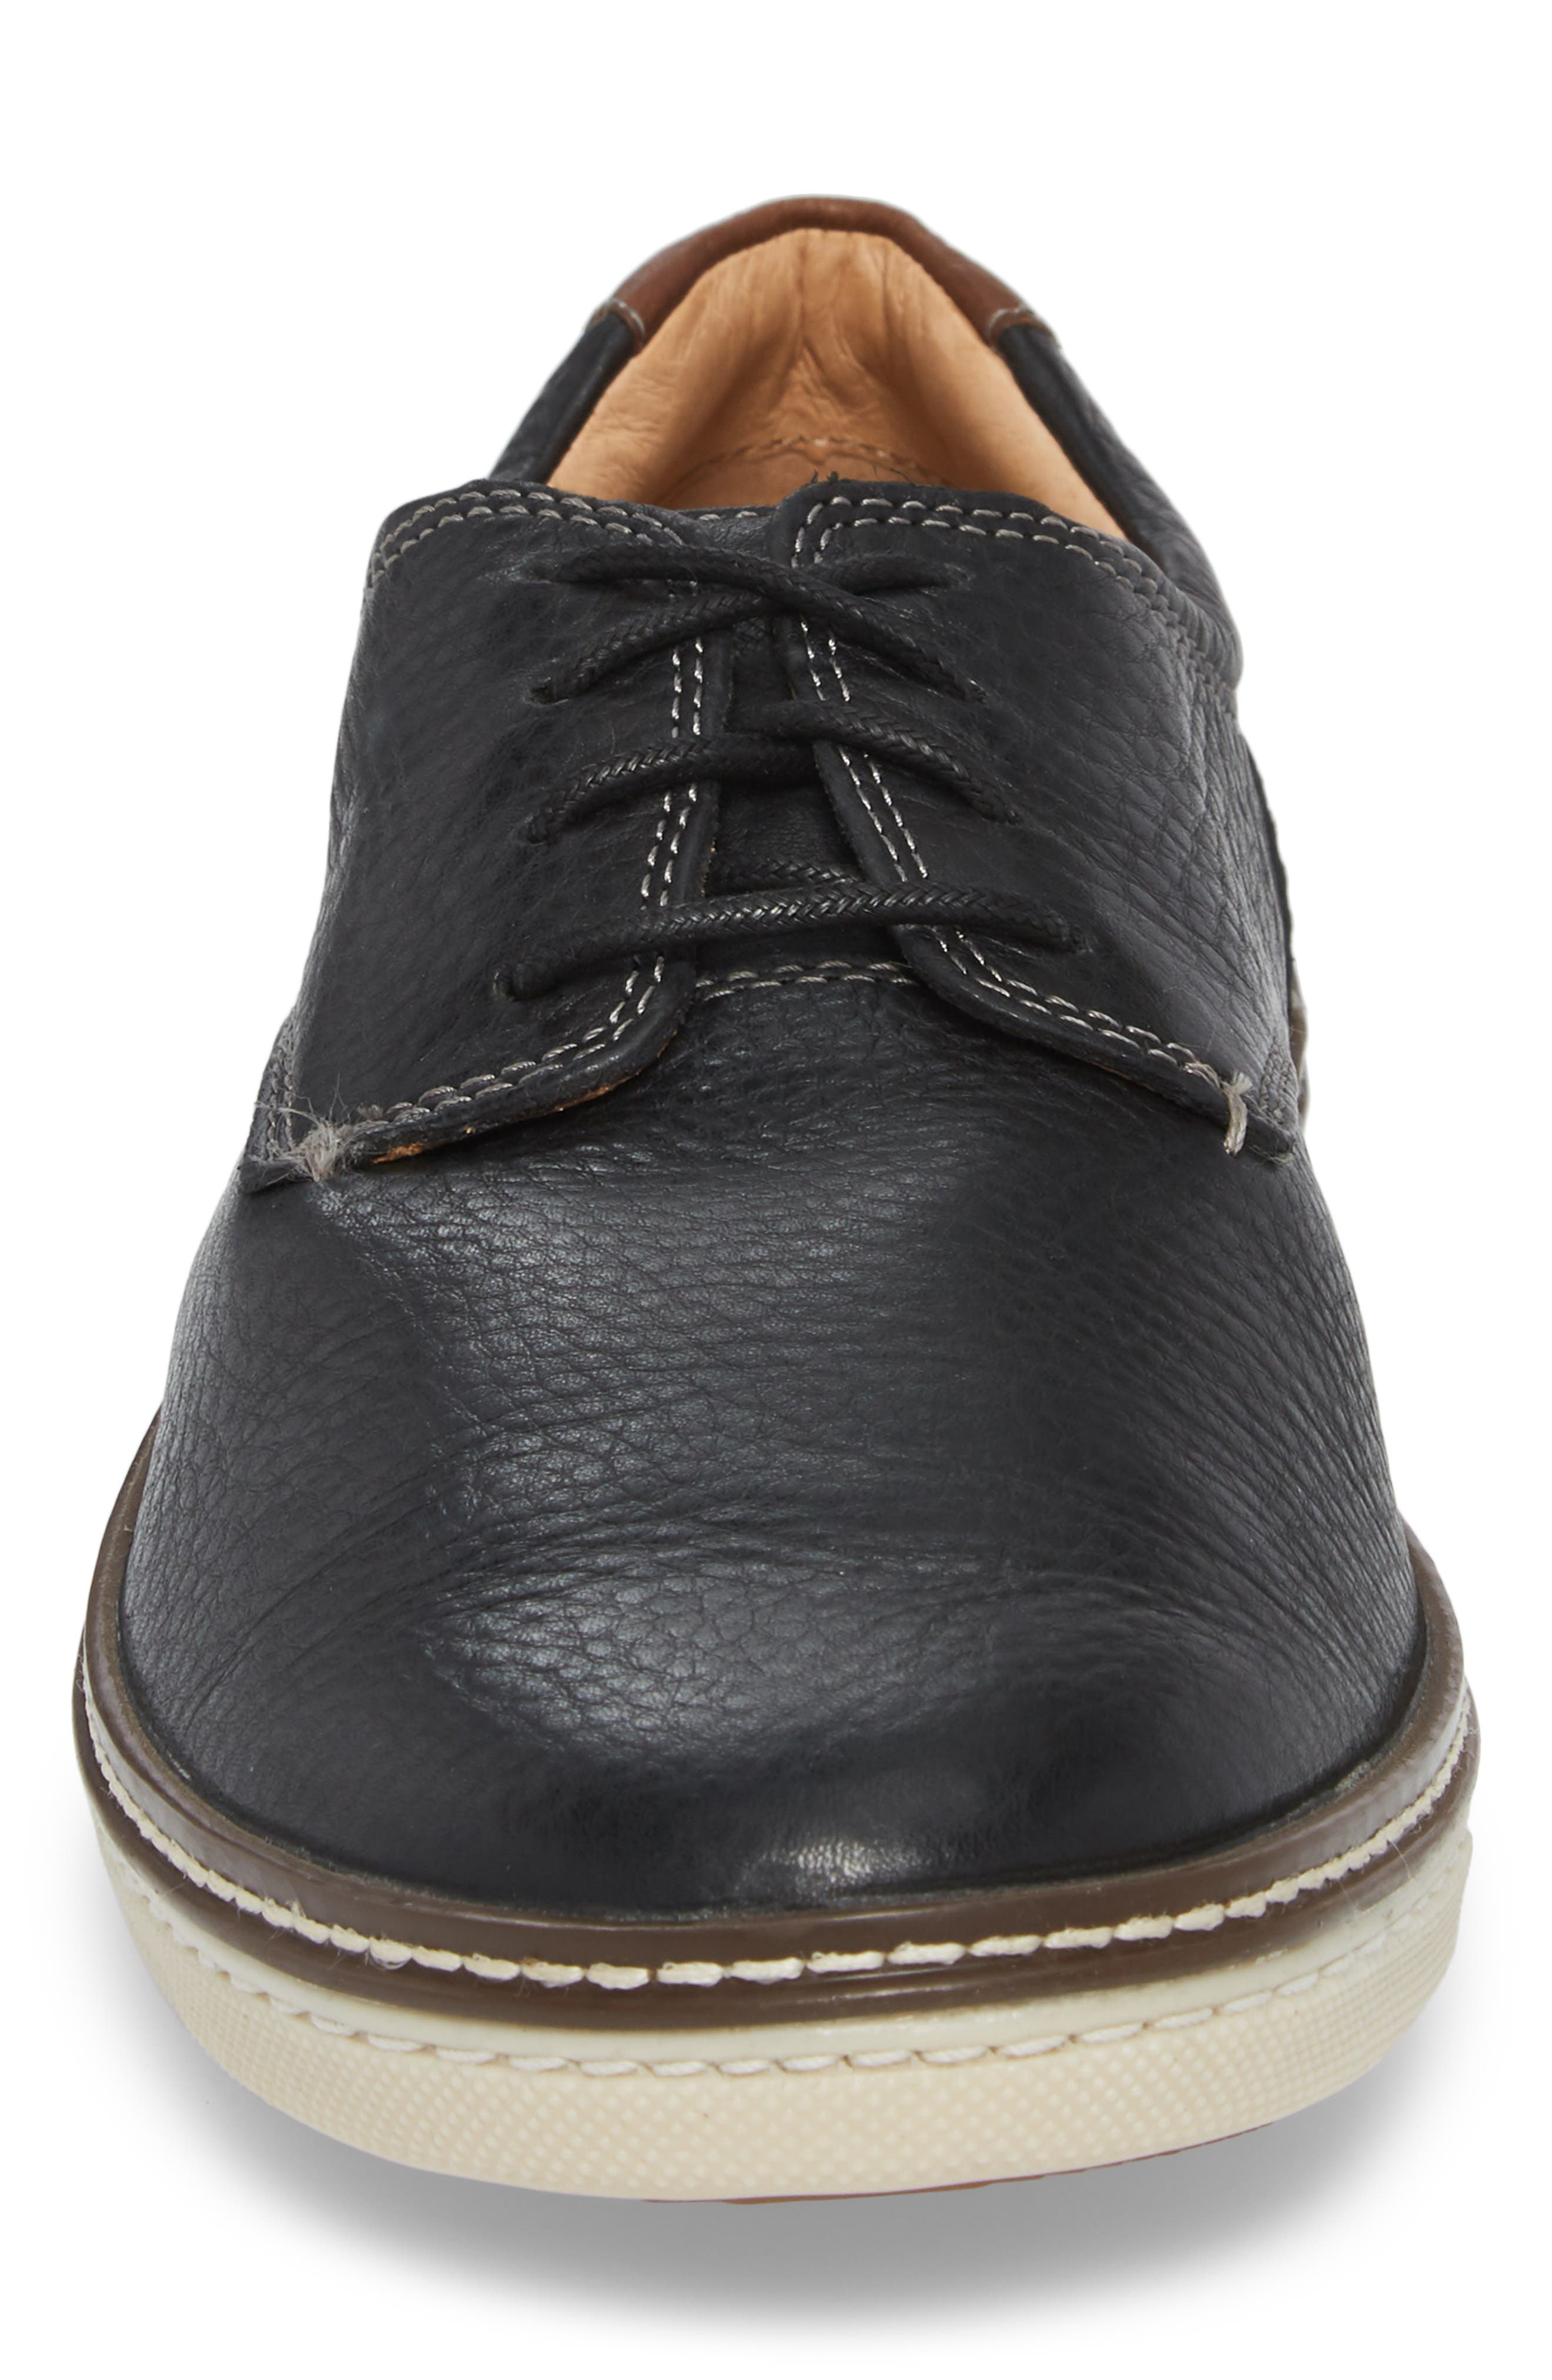 JOHNSTON & MURPHY, McGuffey Derby Sneaker, Alternate thumbnail 4, color, BLACK LEATHER